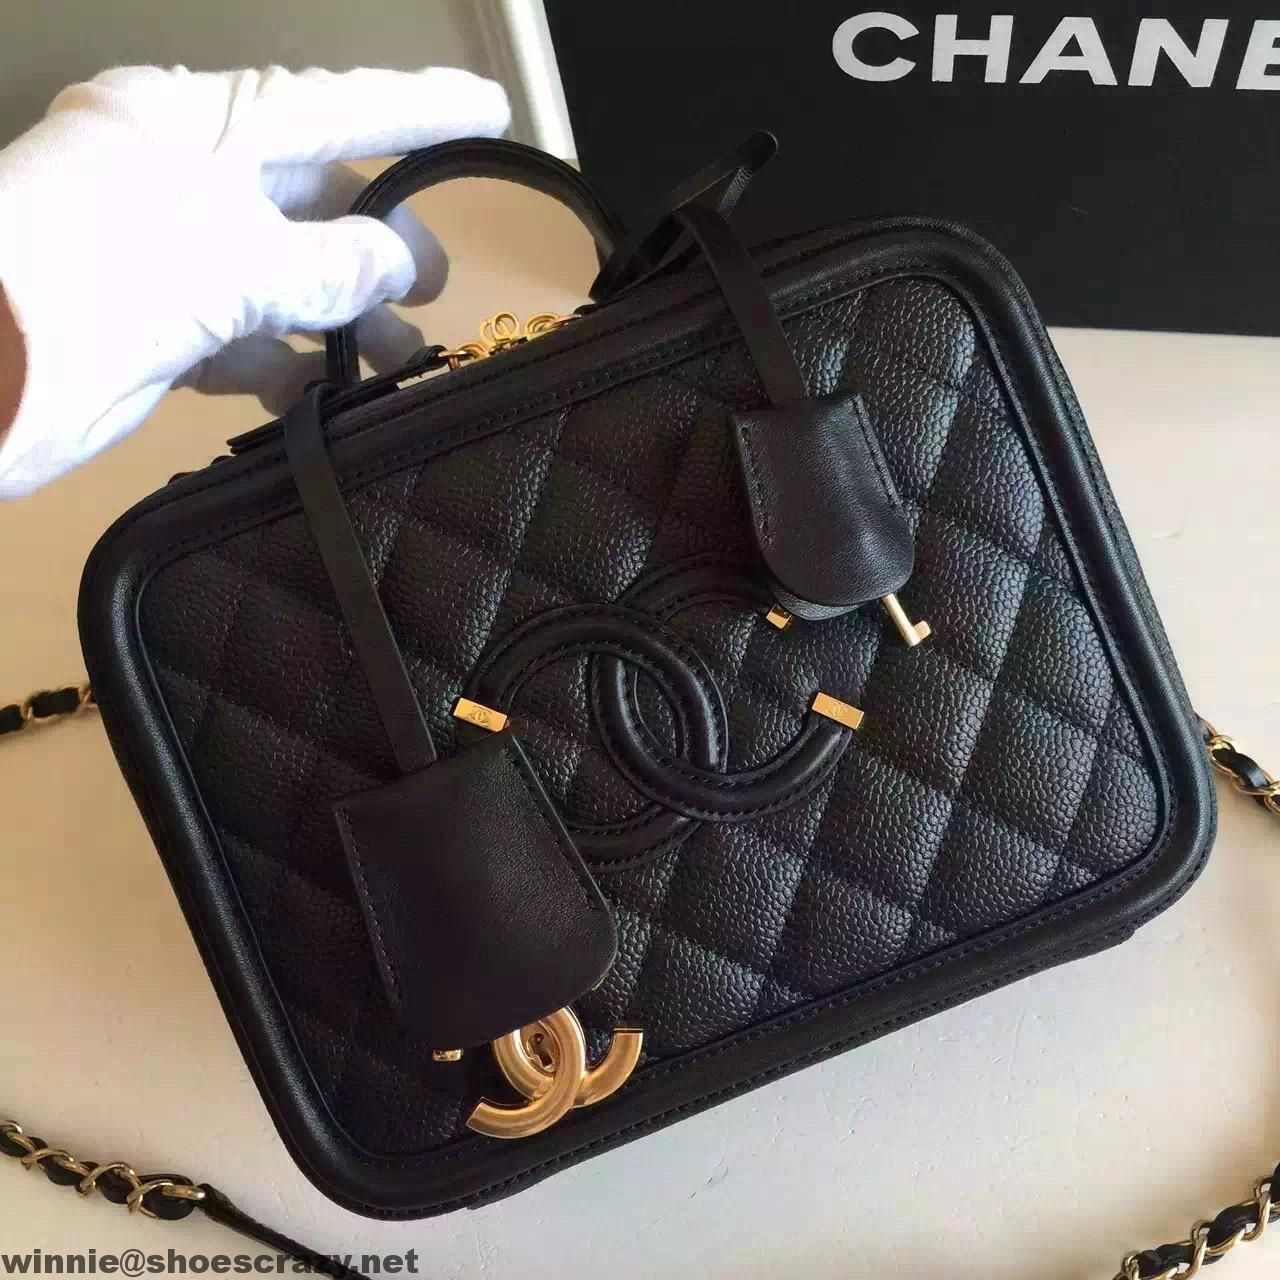 31eee53d92fc Chanel CC Filigree Small Vanity Case Small Bag | Chanel in 2019 ...